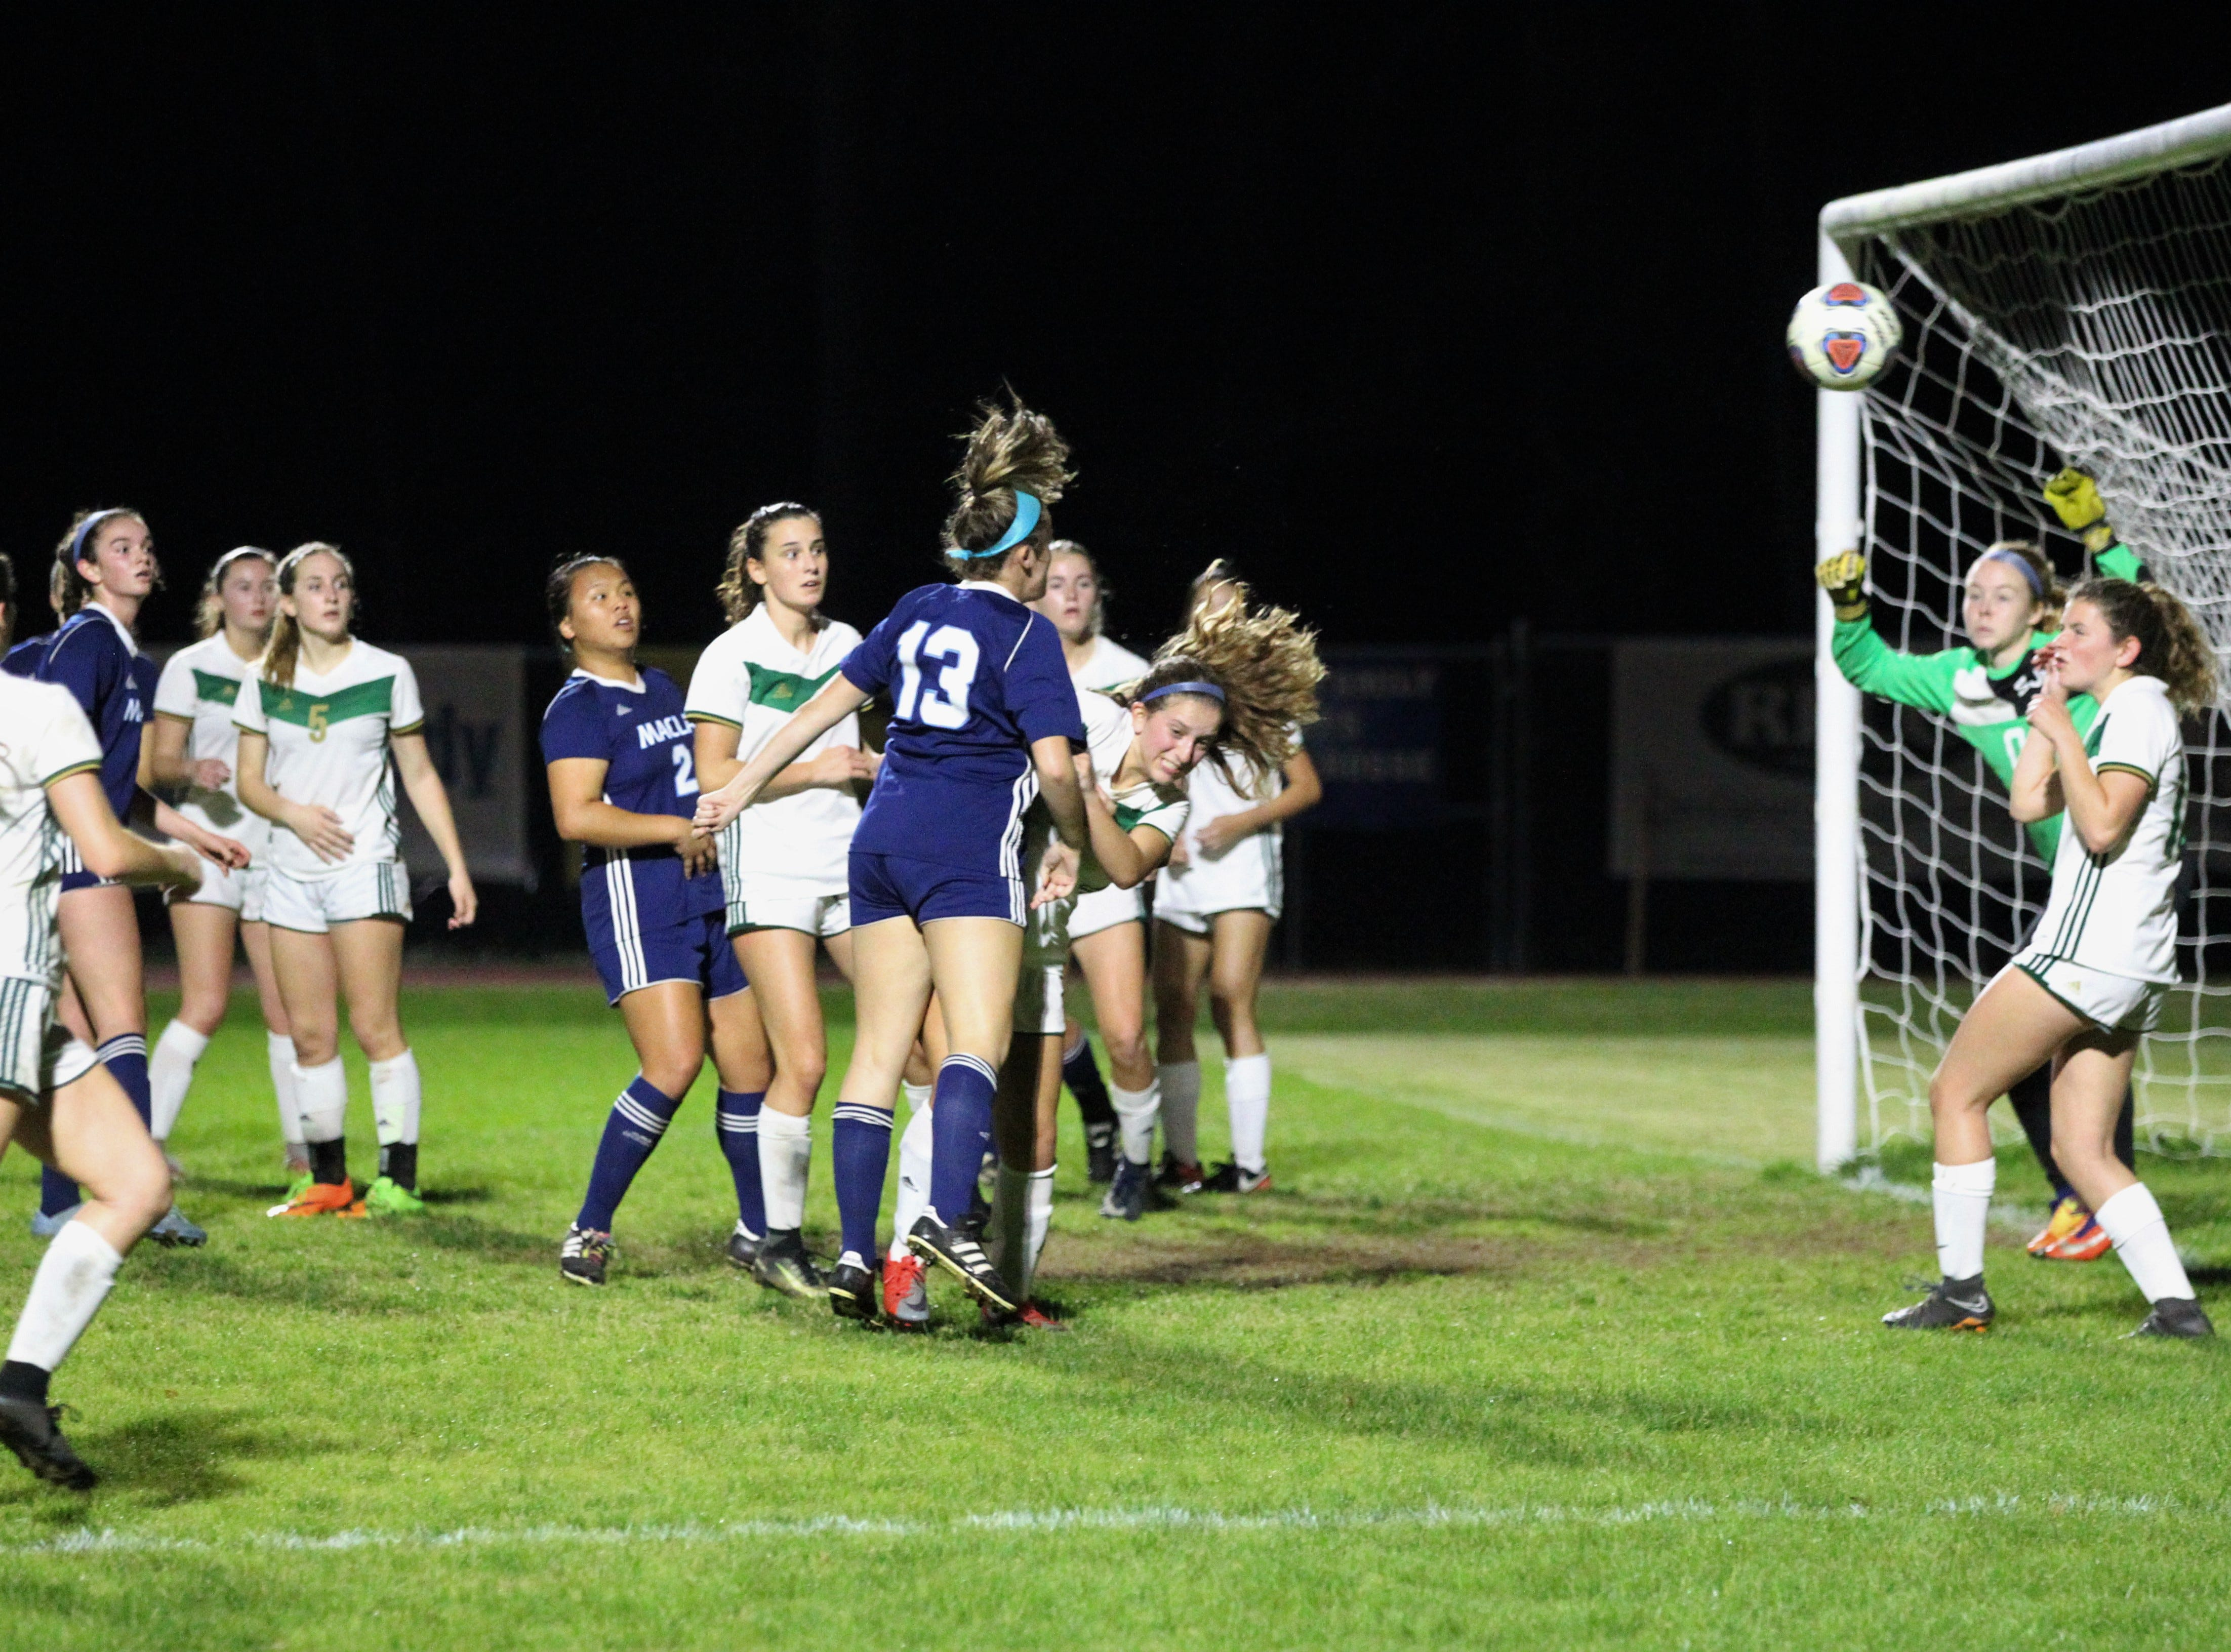 Maclay's Hailey Hobbs heads a corner kick that just sails wide of goal as Maclay's girls soccer team beat St. Joseph Academy 4-0 in a Region 1-1A quarterfinal on Jan. 5, 2019.